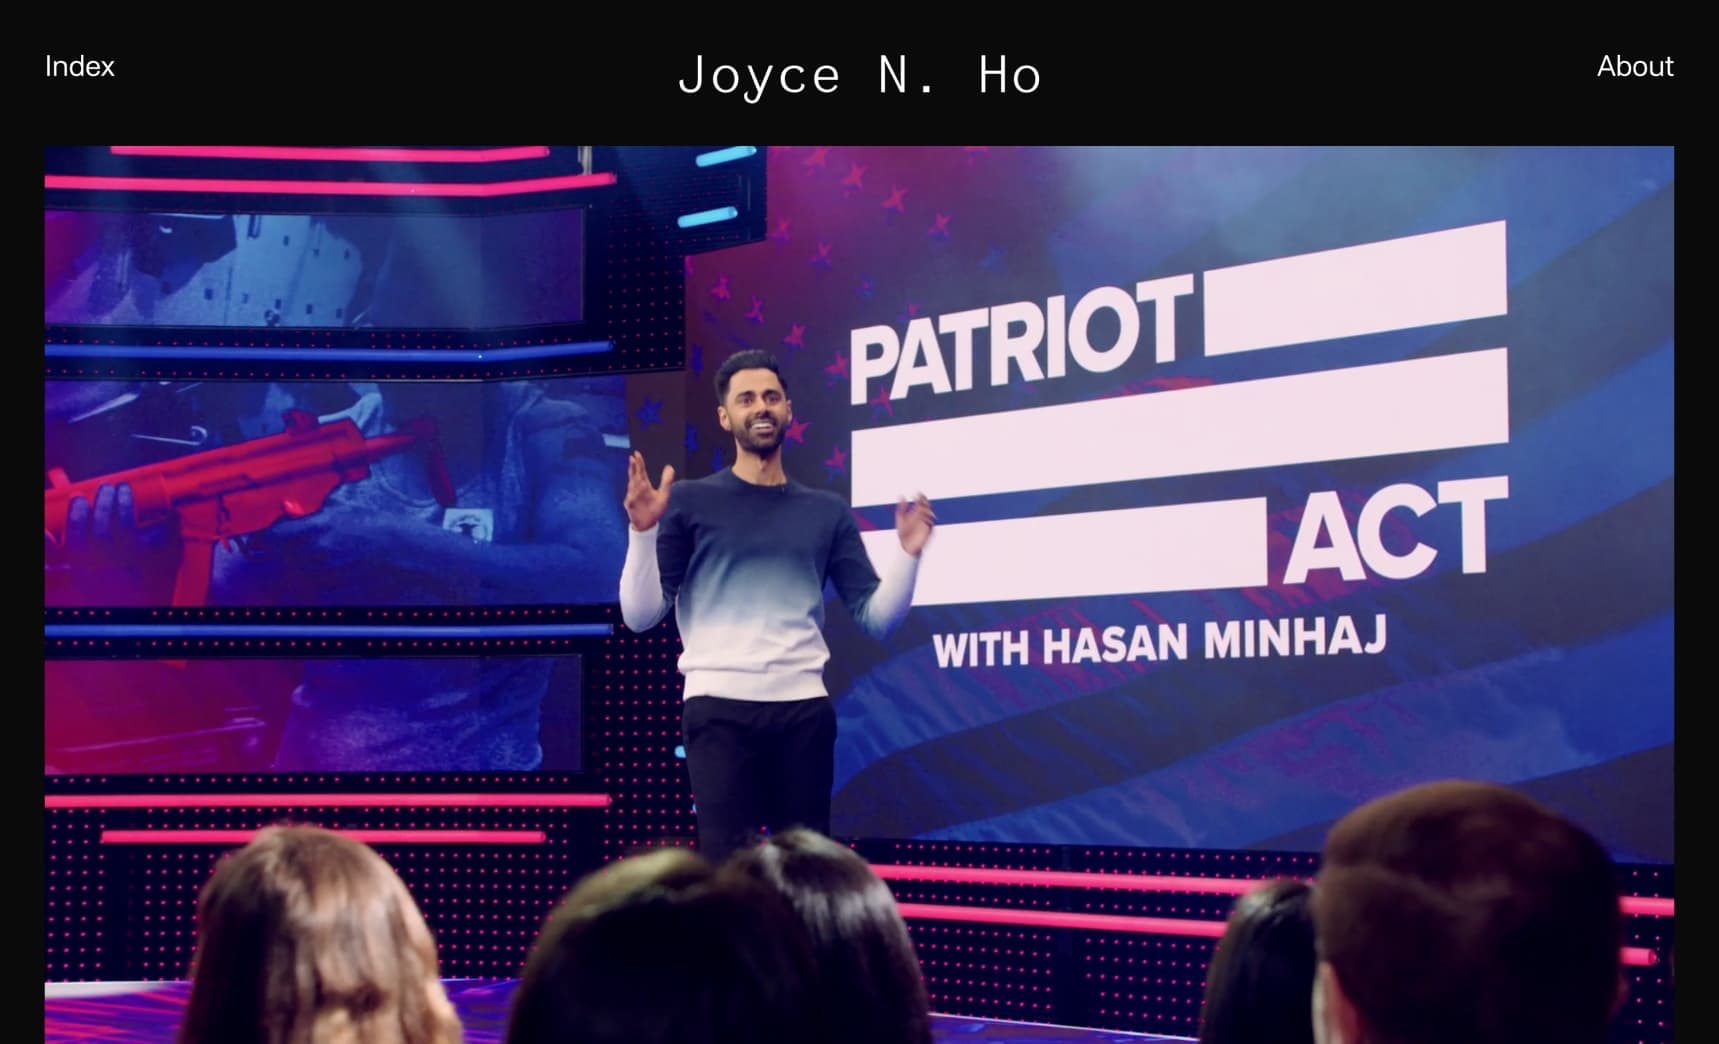 Joyce N Ho website screenshot Patriot Act with Hasan Minhaj